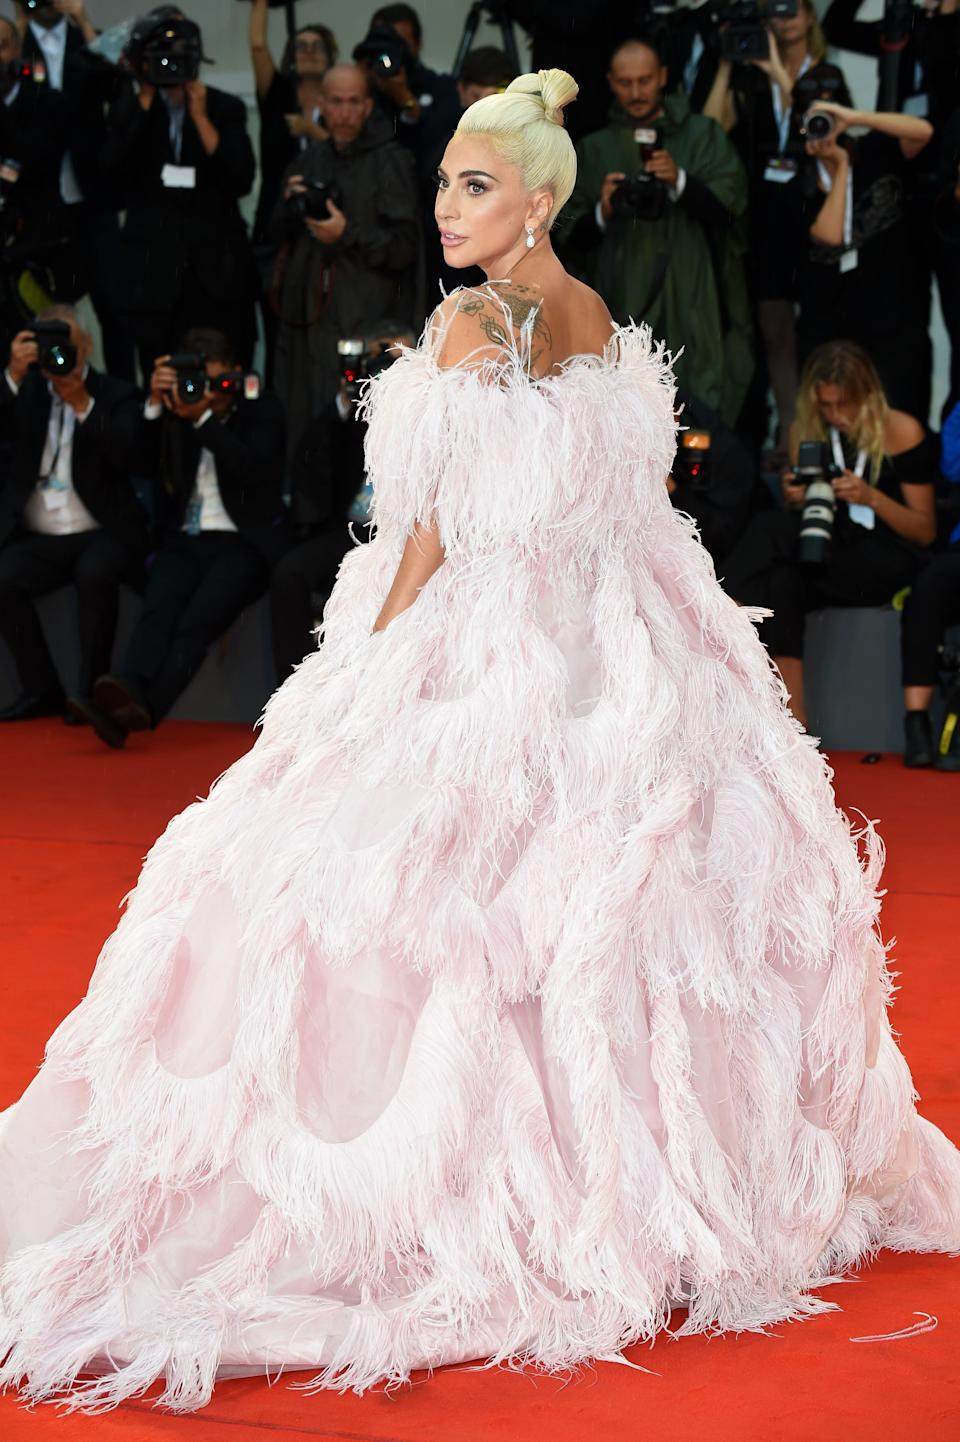 The singer wears the voluminous dress at the 75th Venice Film Festival on Aug. 31, 2018.